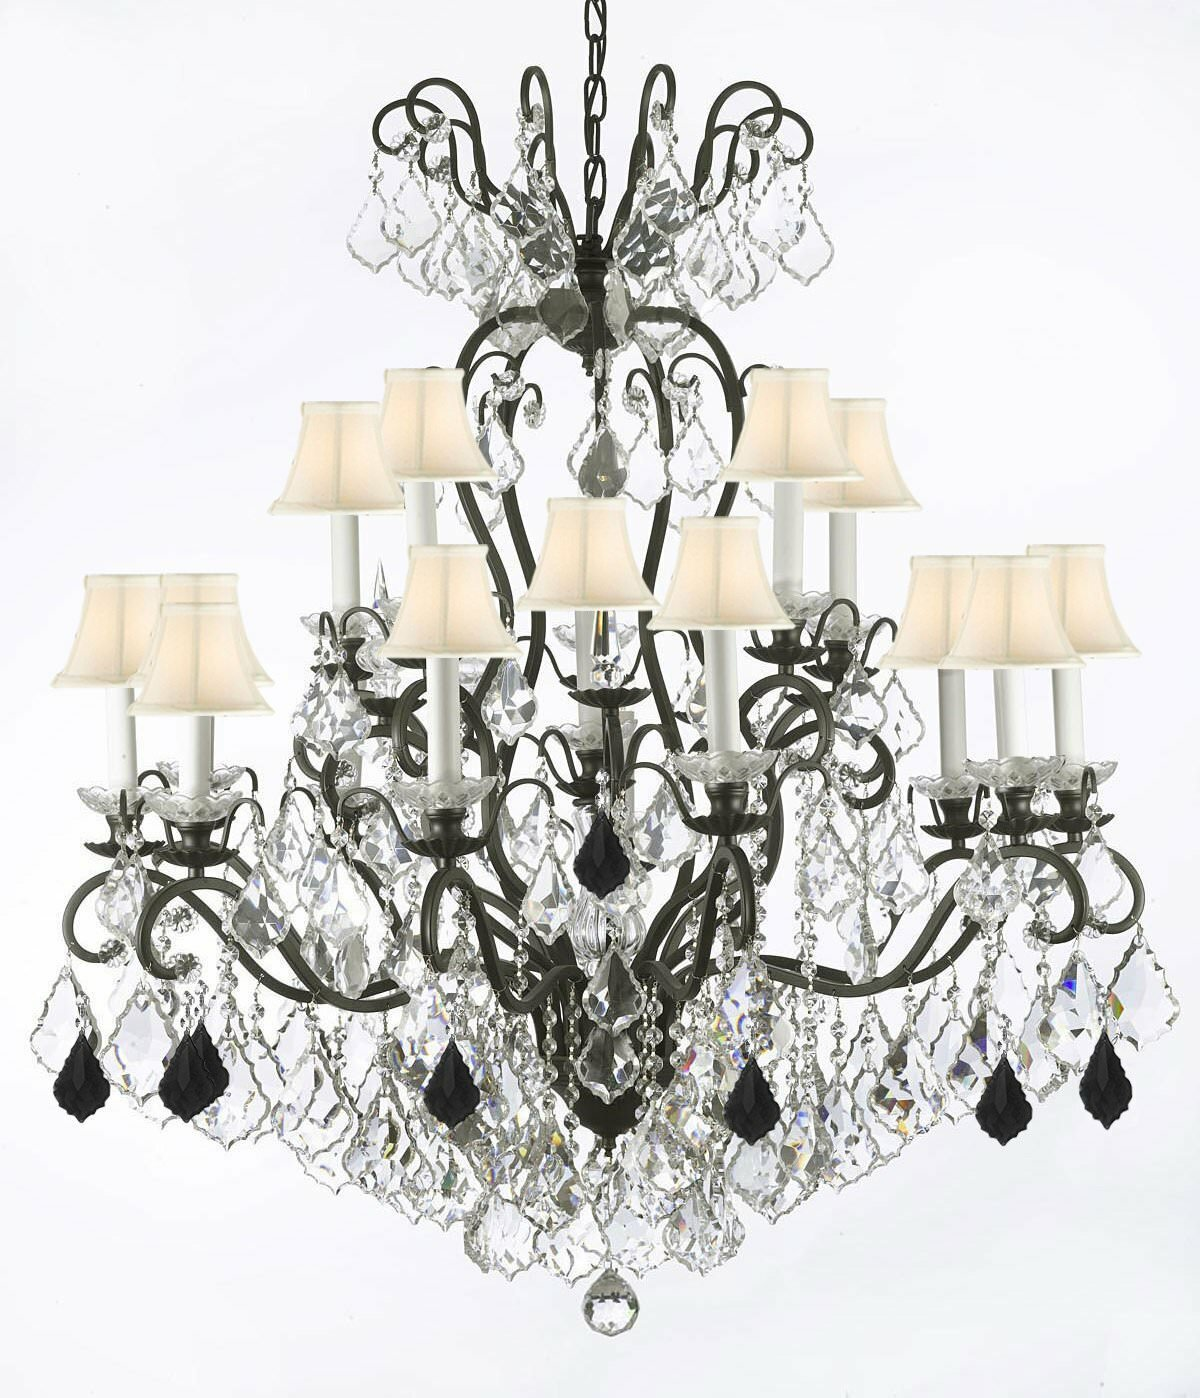 Astoria Grand Maclean 16 Light Shaded Empire Chandelier With Crystal Accents Accents Wayfair